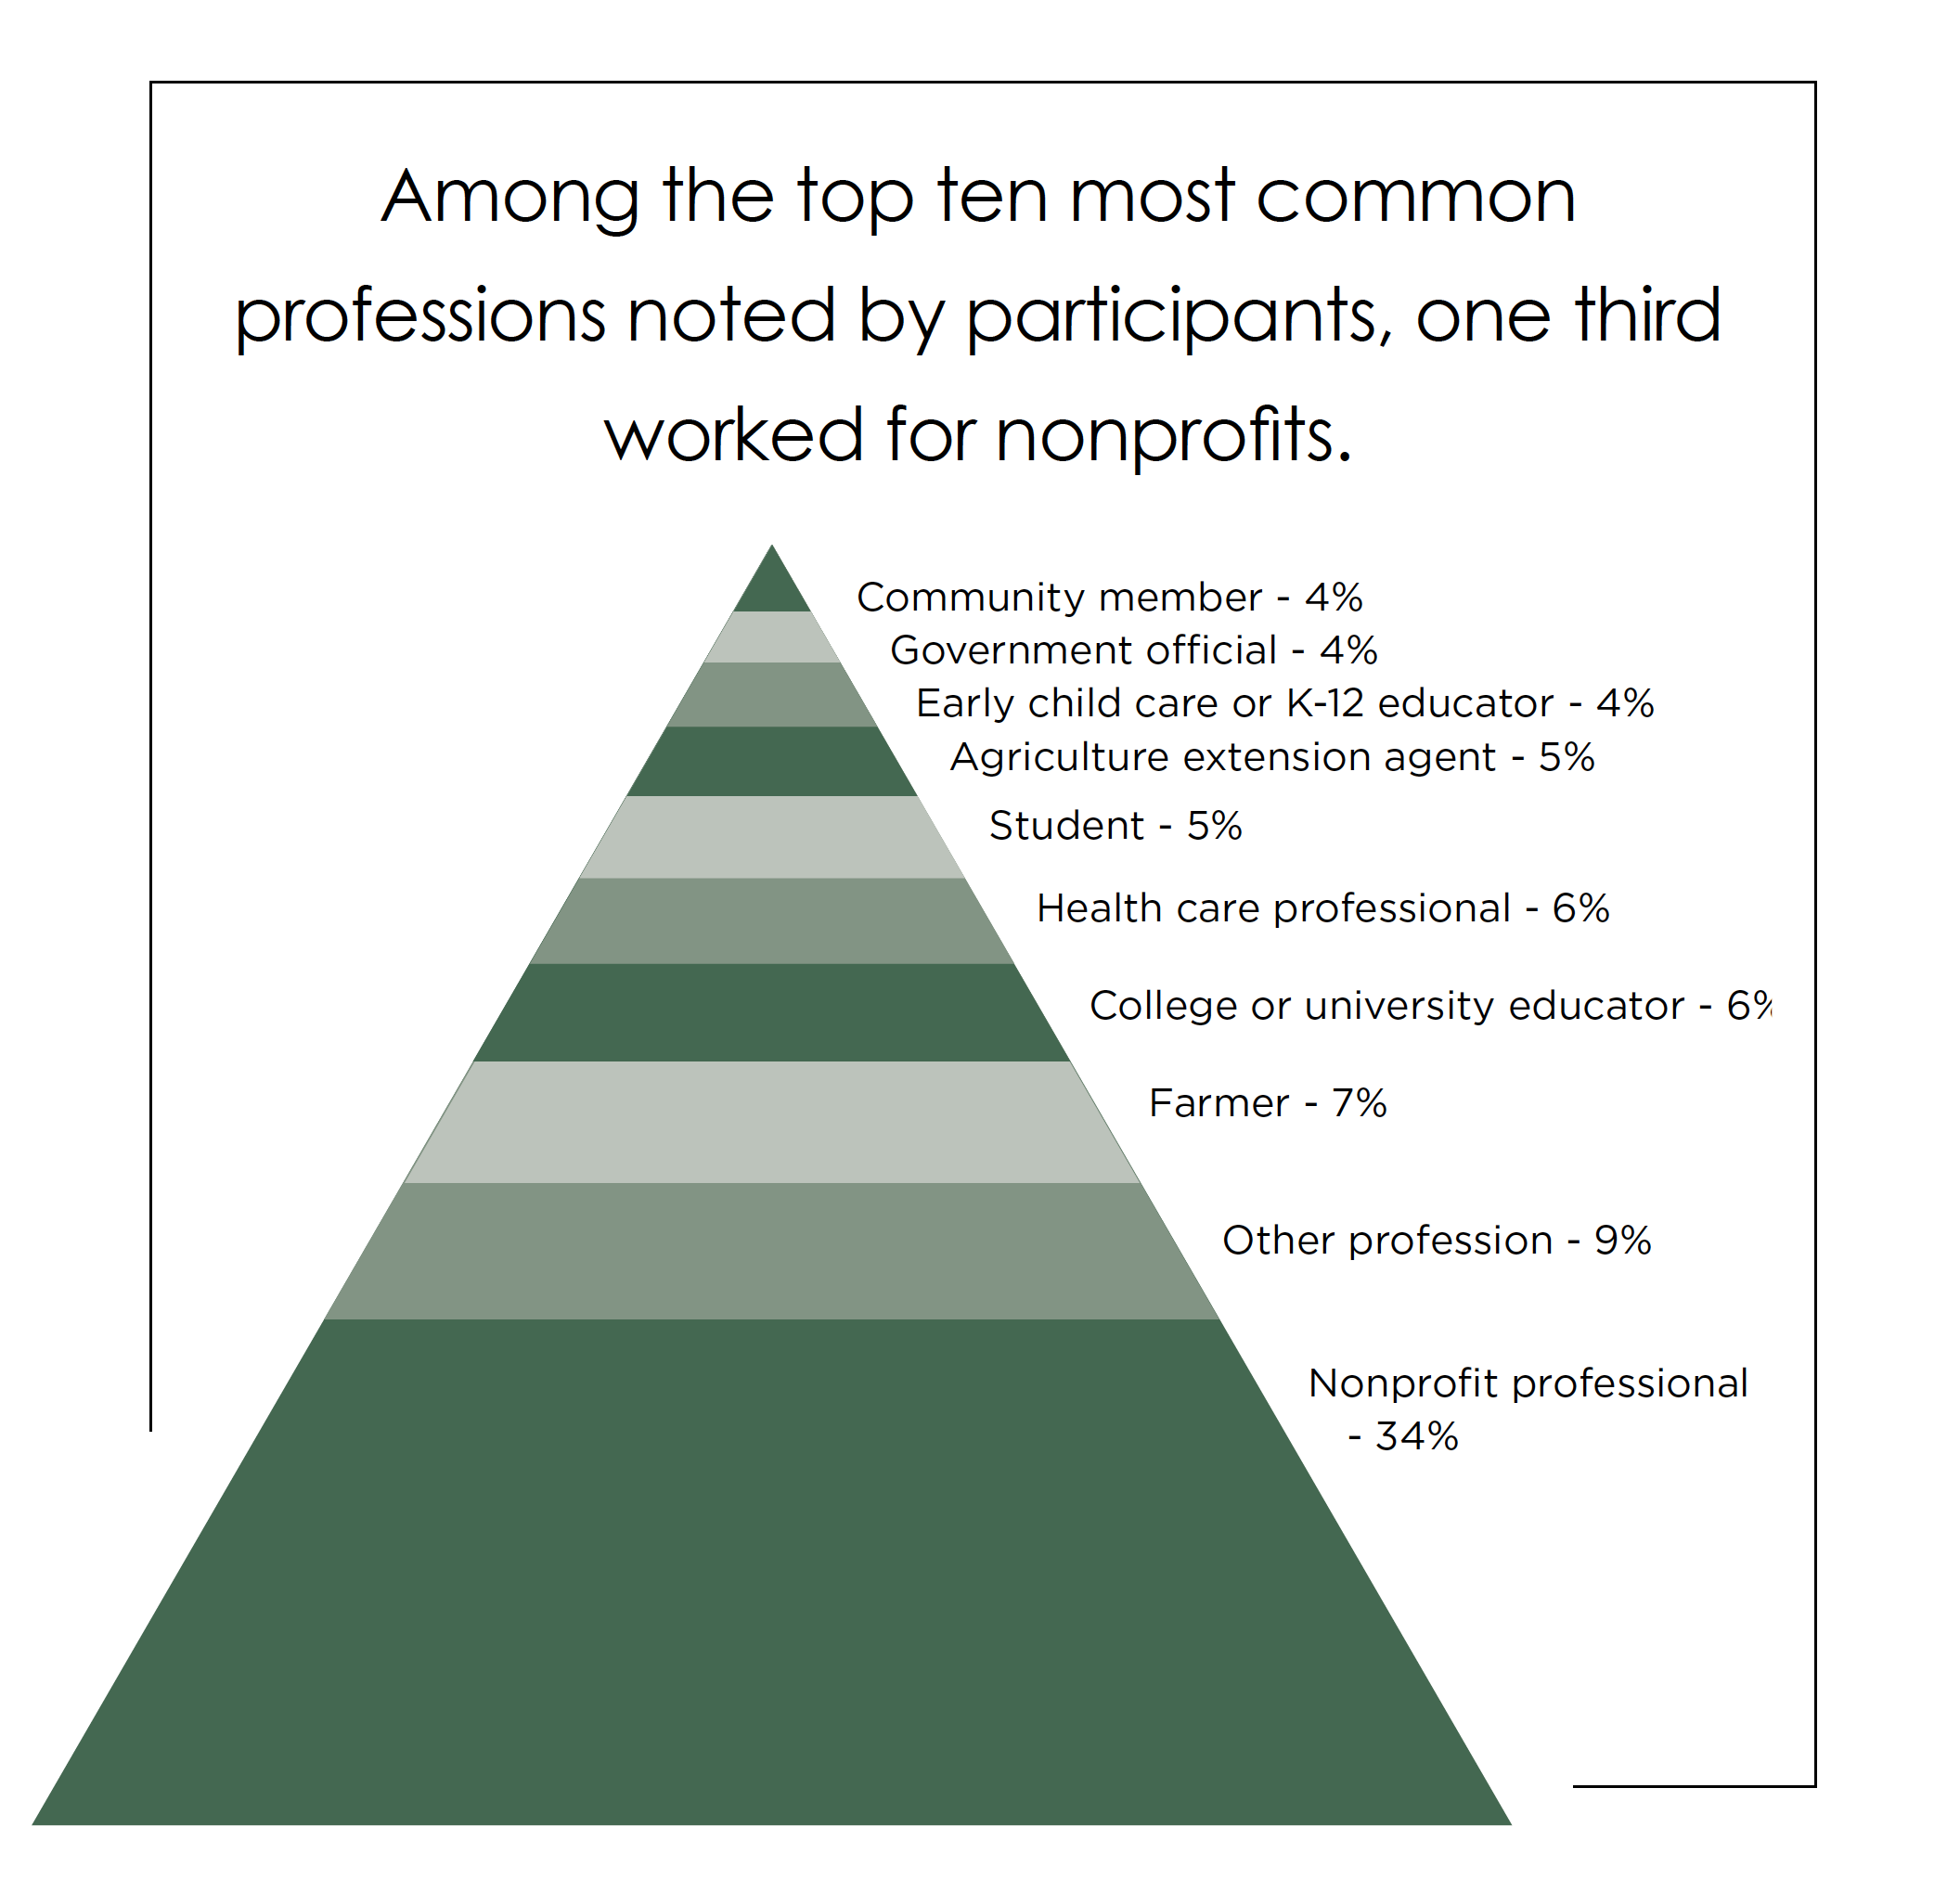 Among the top ten most common professions noted by participants, one third worked for nonprofits.